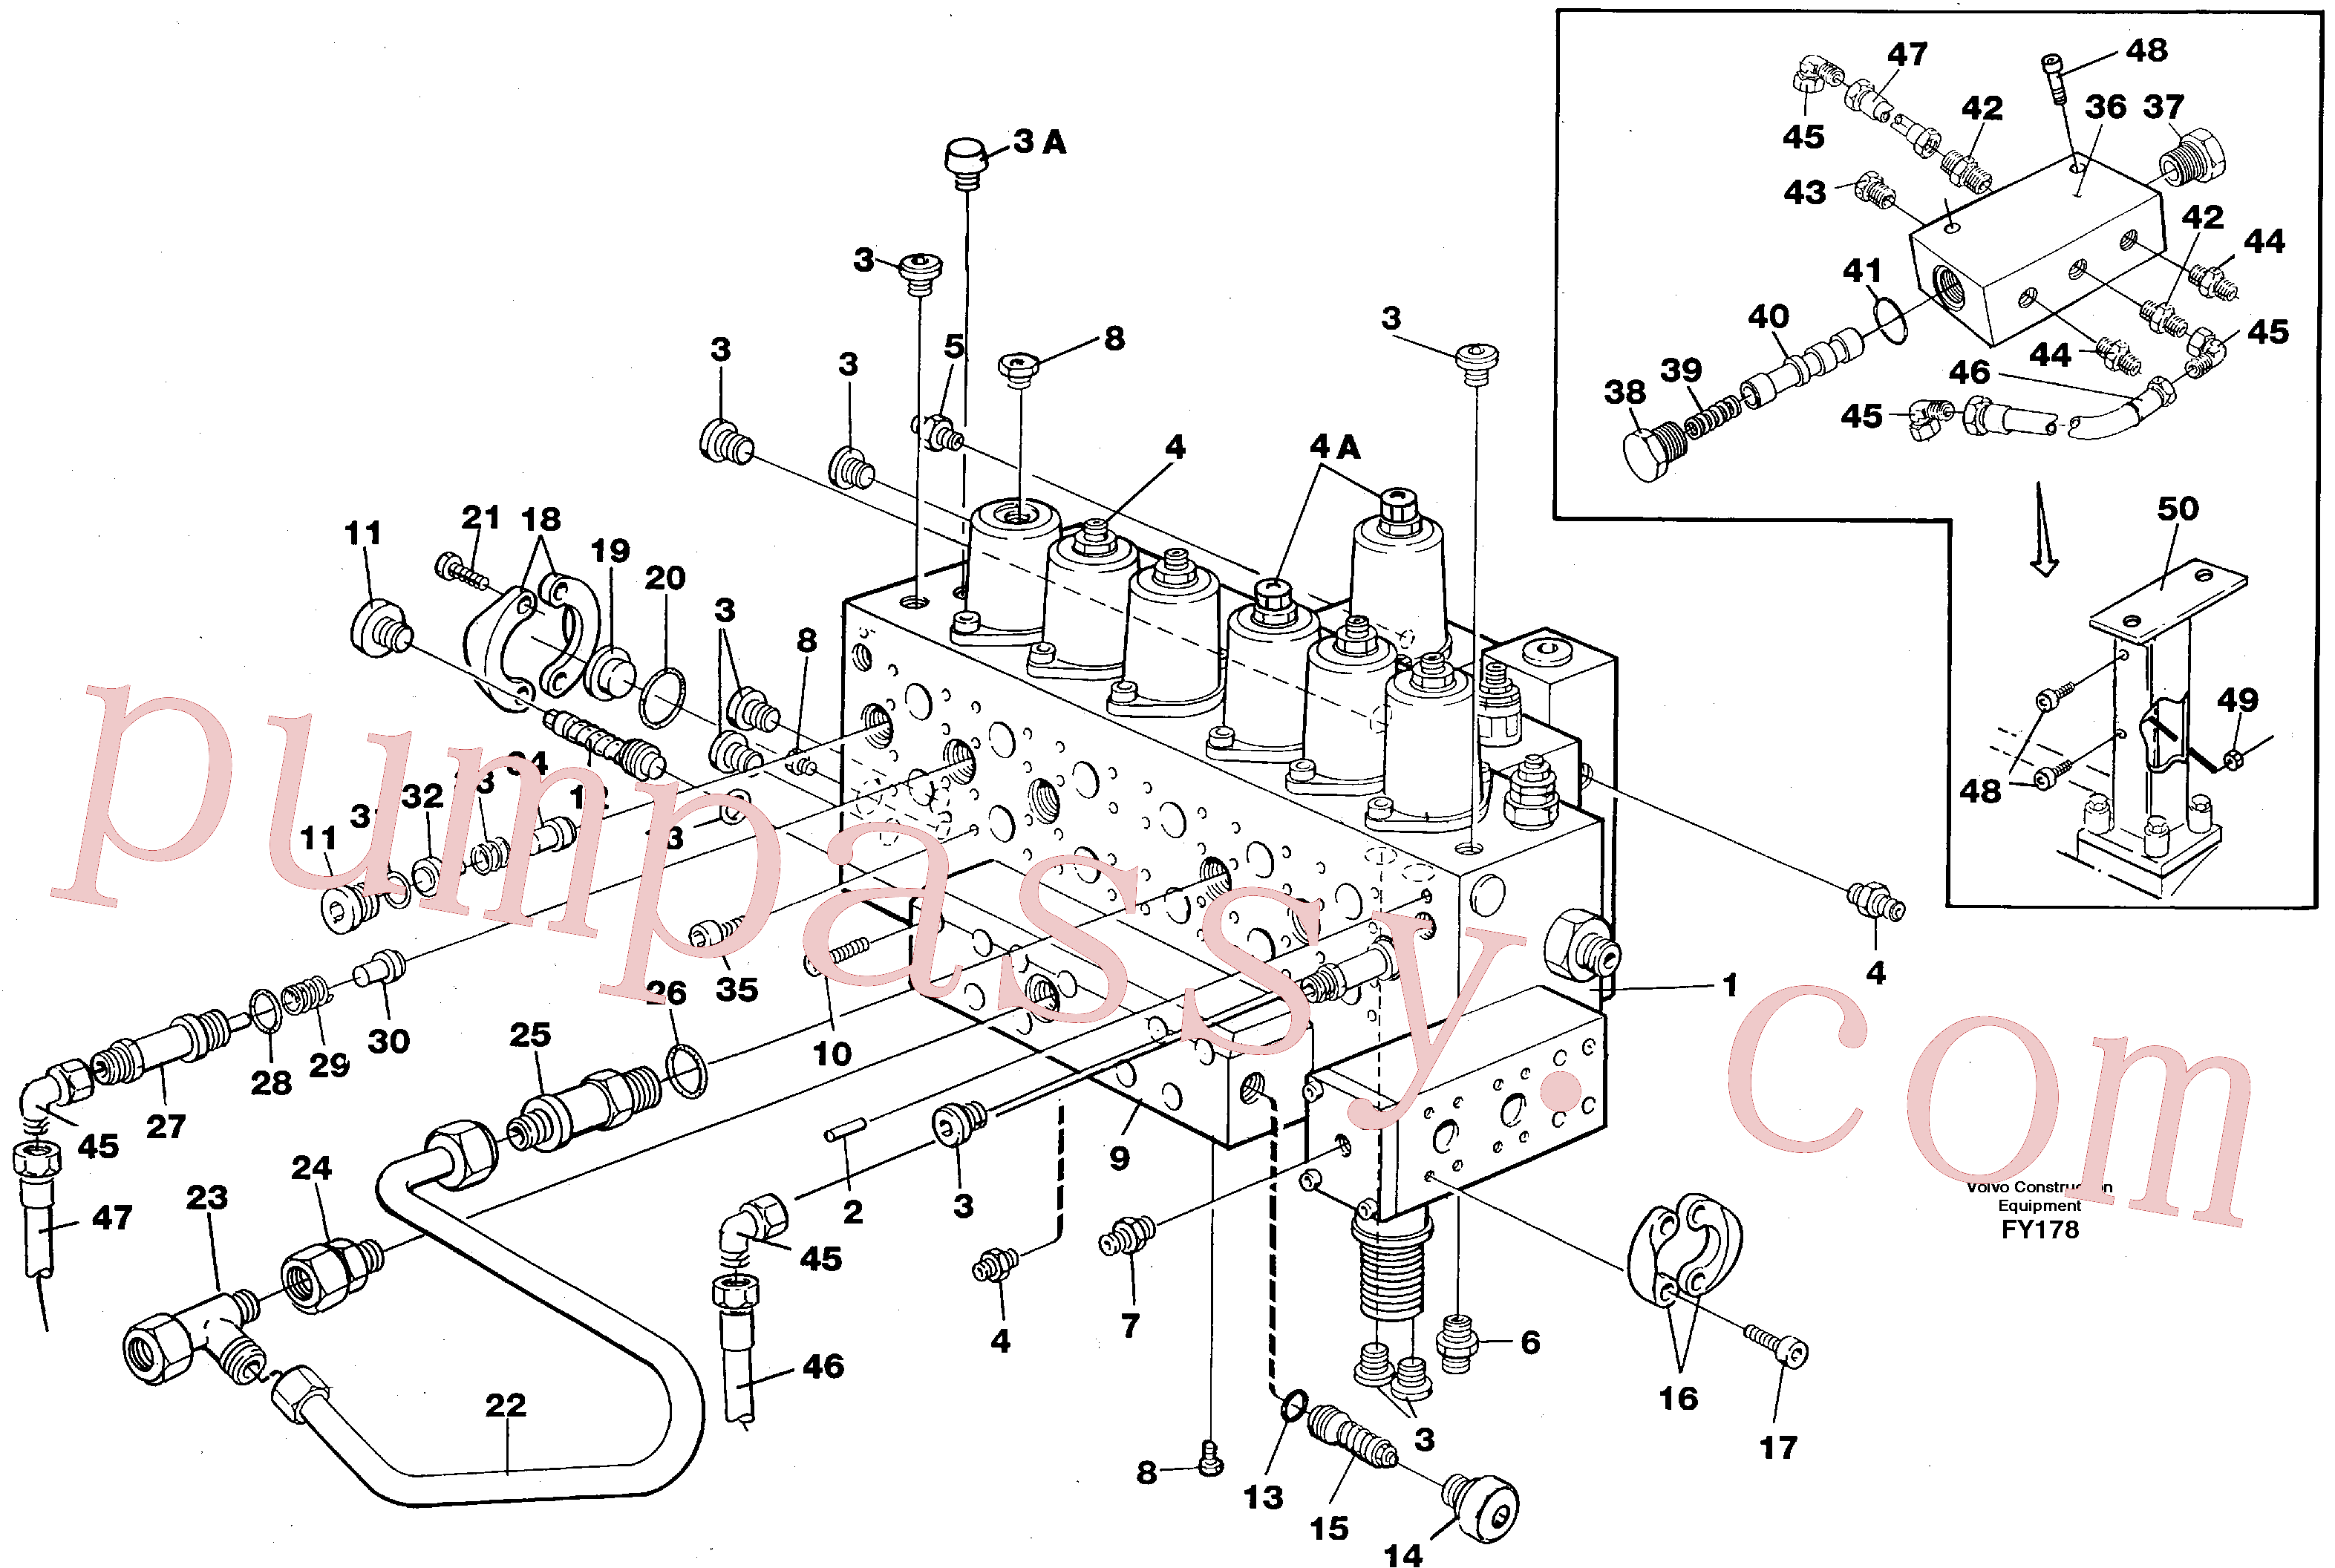 VOE14211859 for Volvo Main valve assembly, tubes connections, assembly bloc(FY178 assembly)